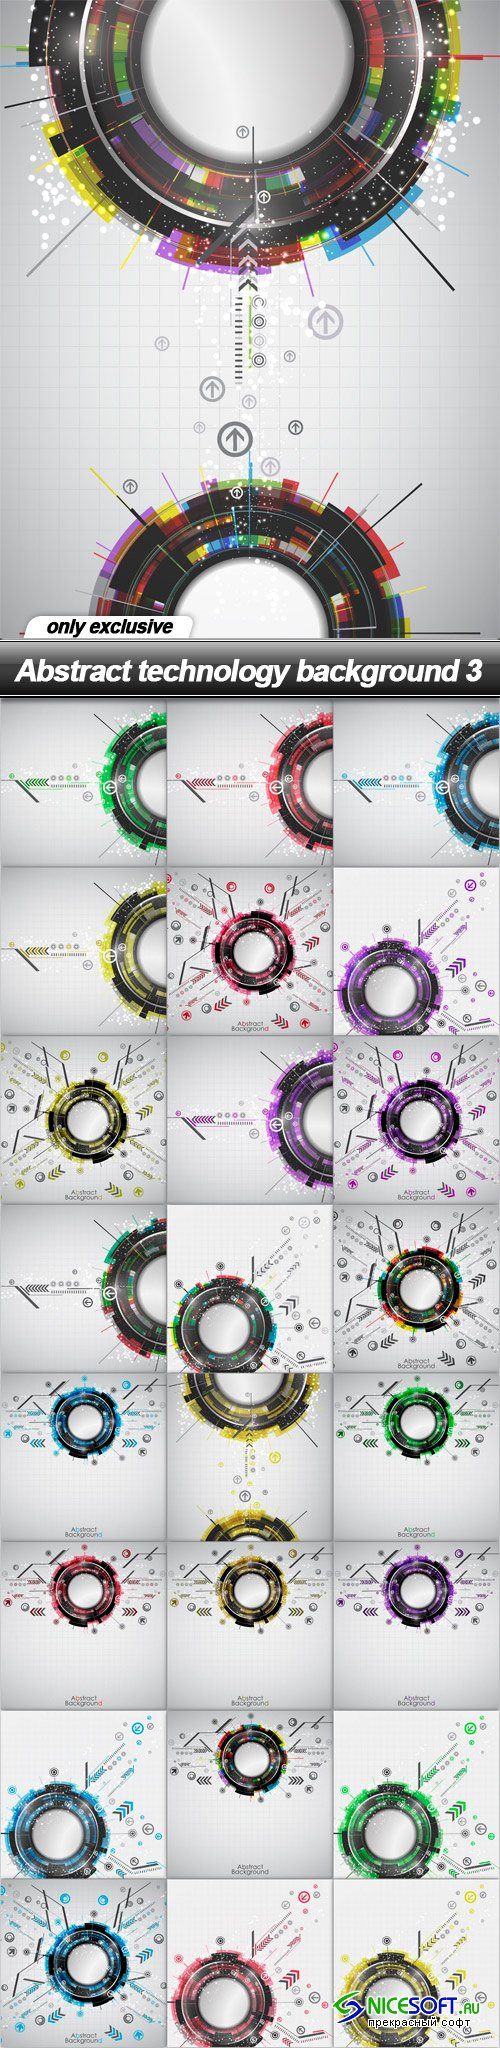 Abstract technology background 3